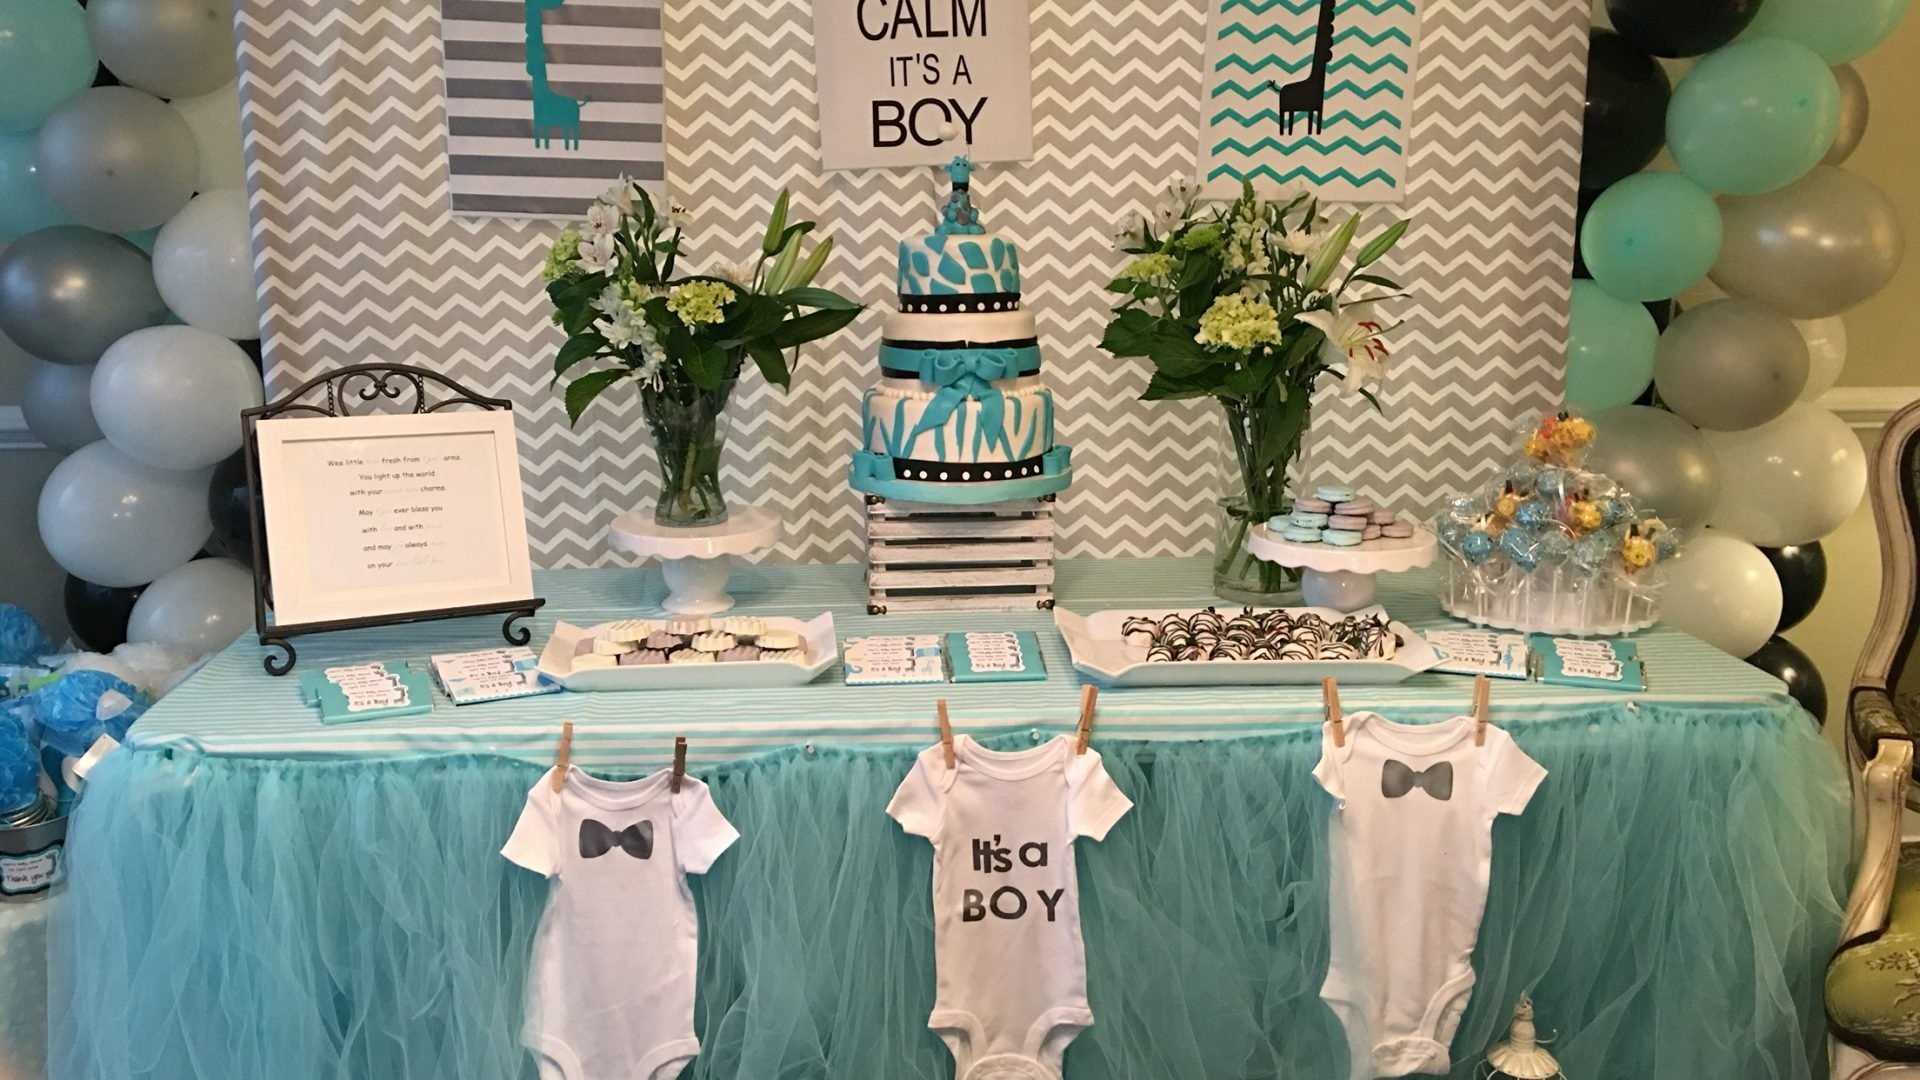 10 Lovely Ideas For Baby Shower Boy impressive baby shower boy ideas on budget diy centerpiece theme 2020